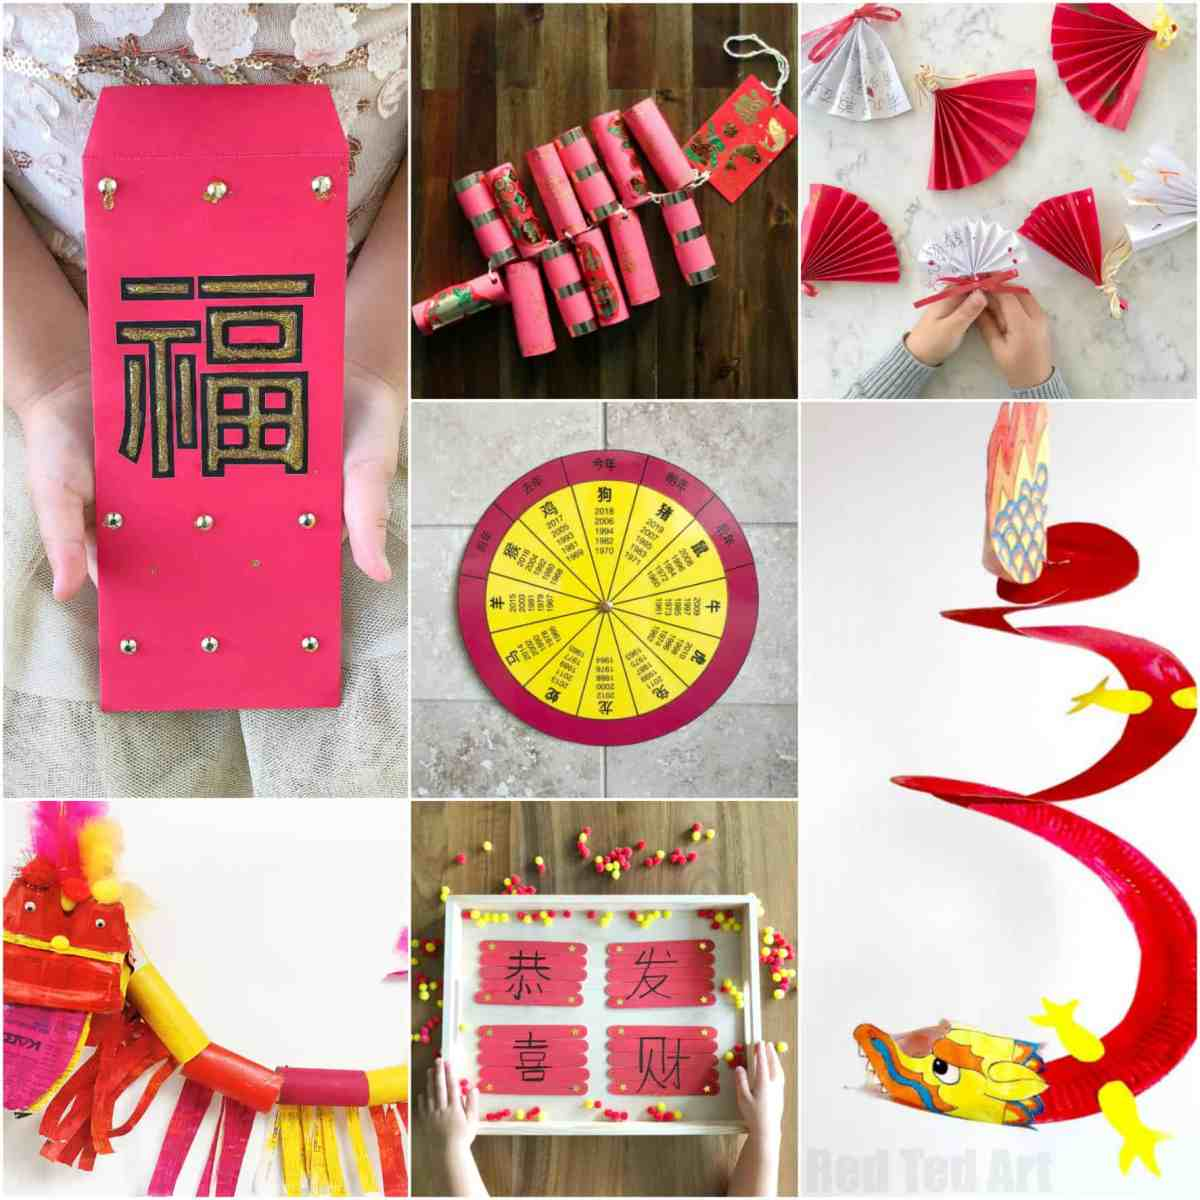 15+ Fun and Educational Chinese New Year Activities for Kids!